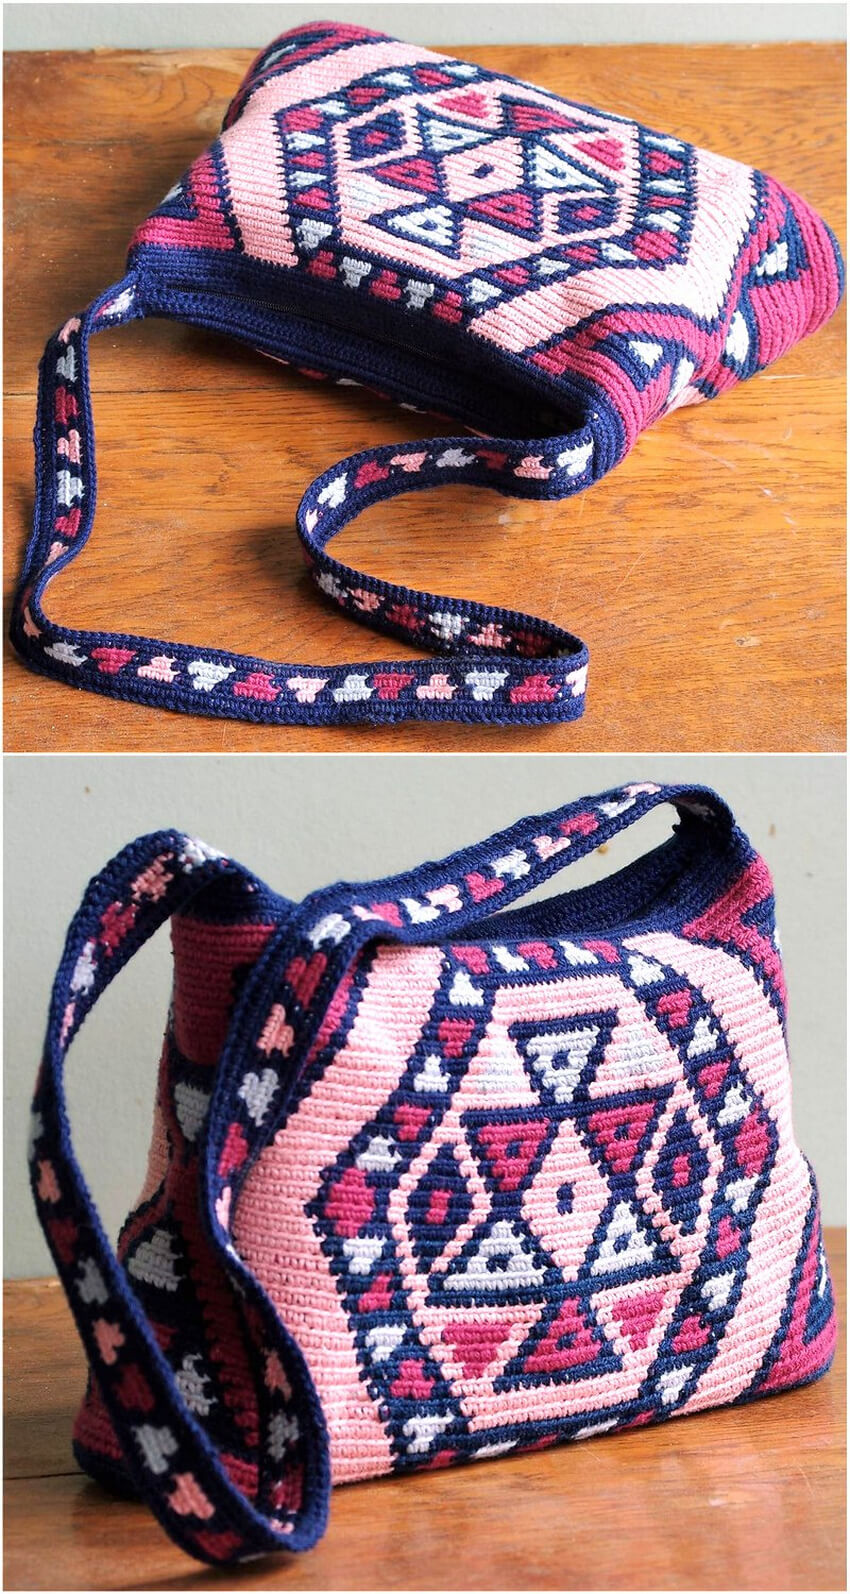 crocheted bag design ideas 1